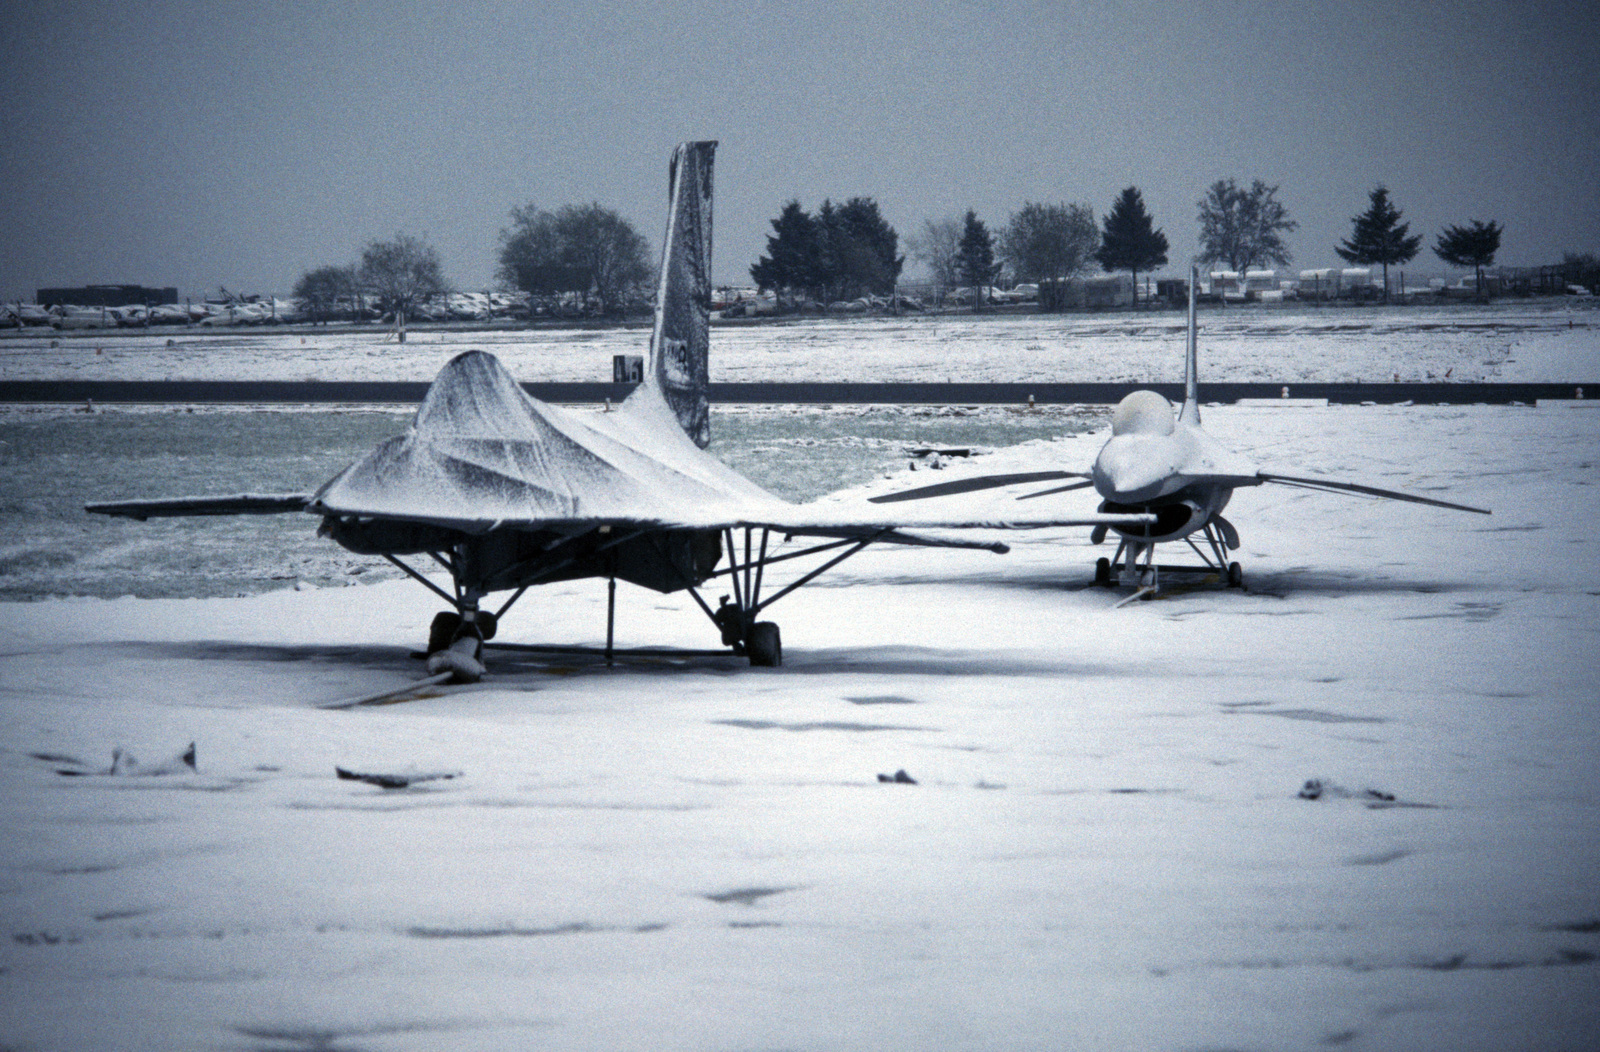 Snow-covered F-16 Fighting Falcon aircraft mockups rest on a fake taxiway during Exercise SALTY DEMO'85.  SALTY DEMO'85 is an air base survivability exercise evaluating passive and active defenses, aircraft operation and generation, and base recovery systems